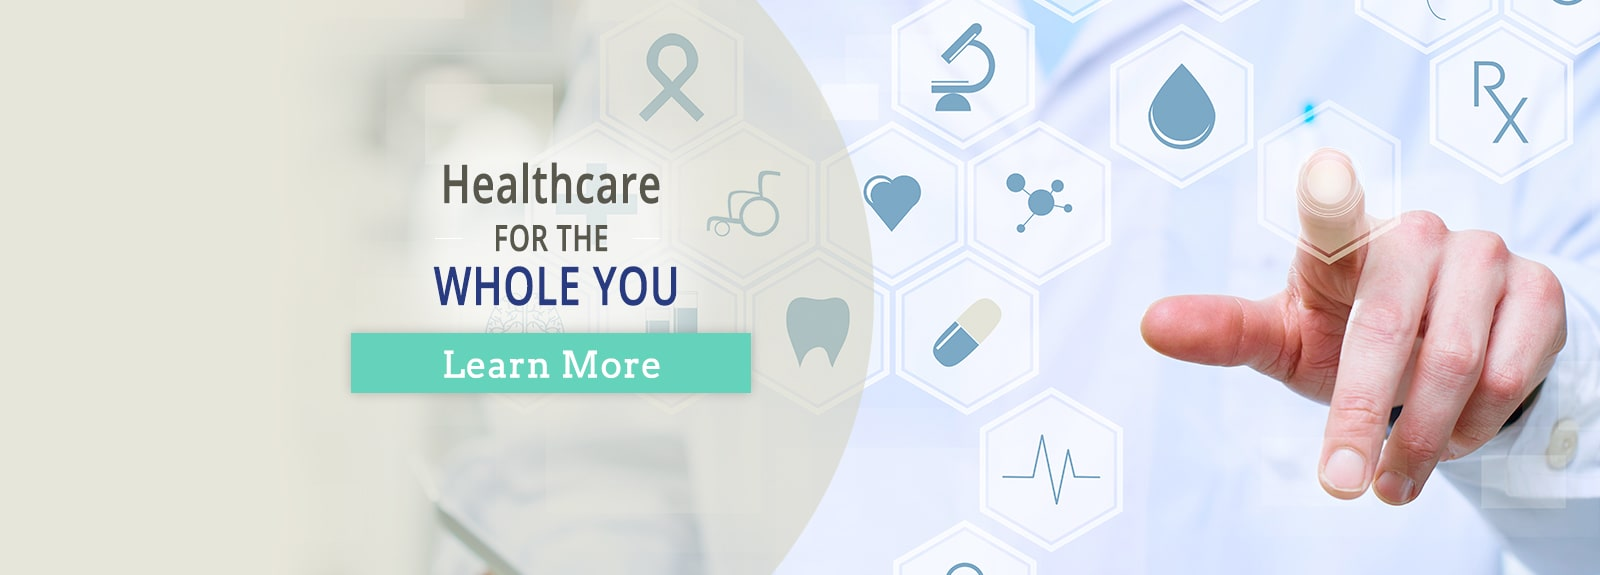 Healthcare for the WHOLE YOU. Learn More.